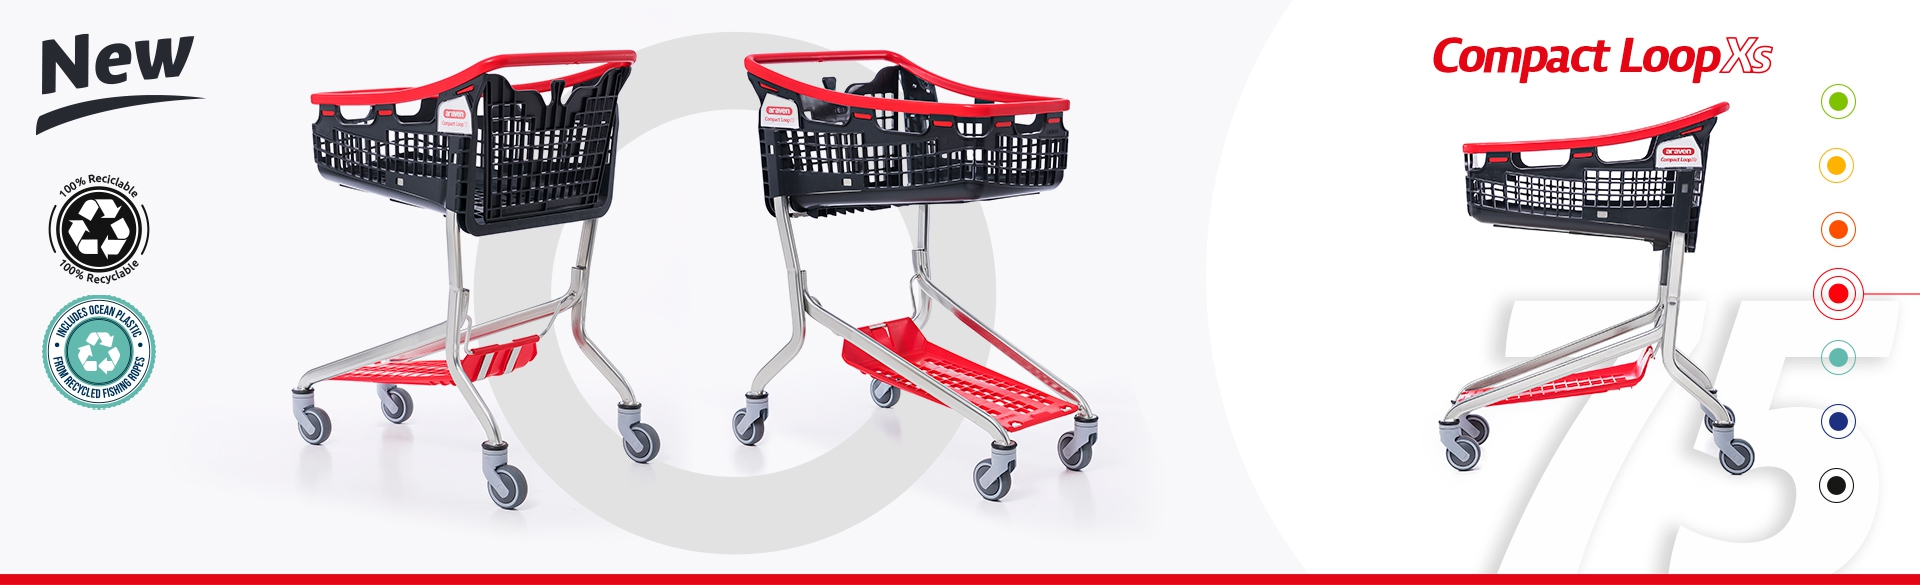 New Shopping Cart Compact Loop XS